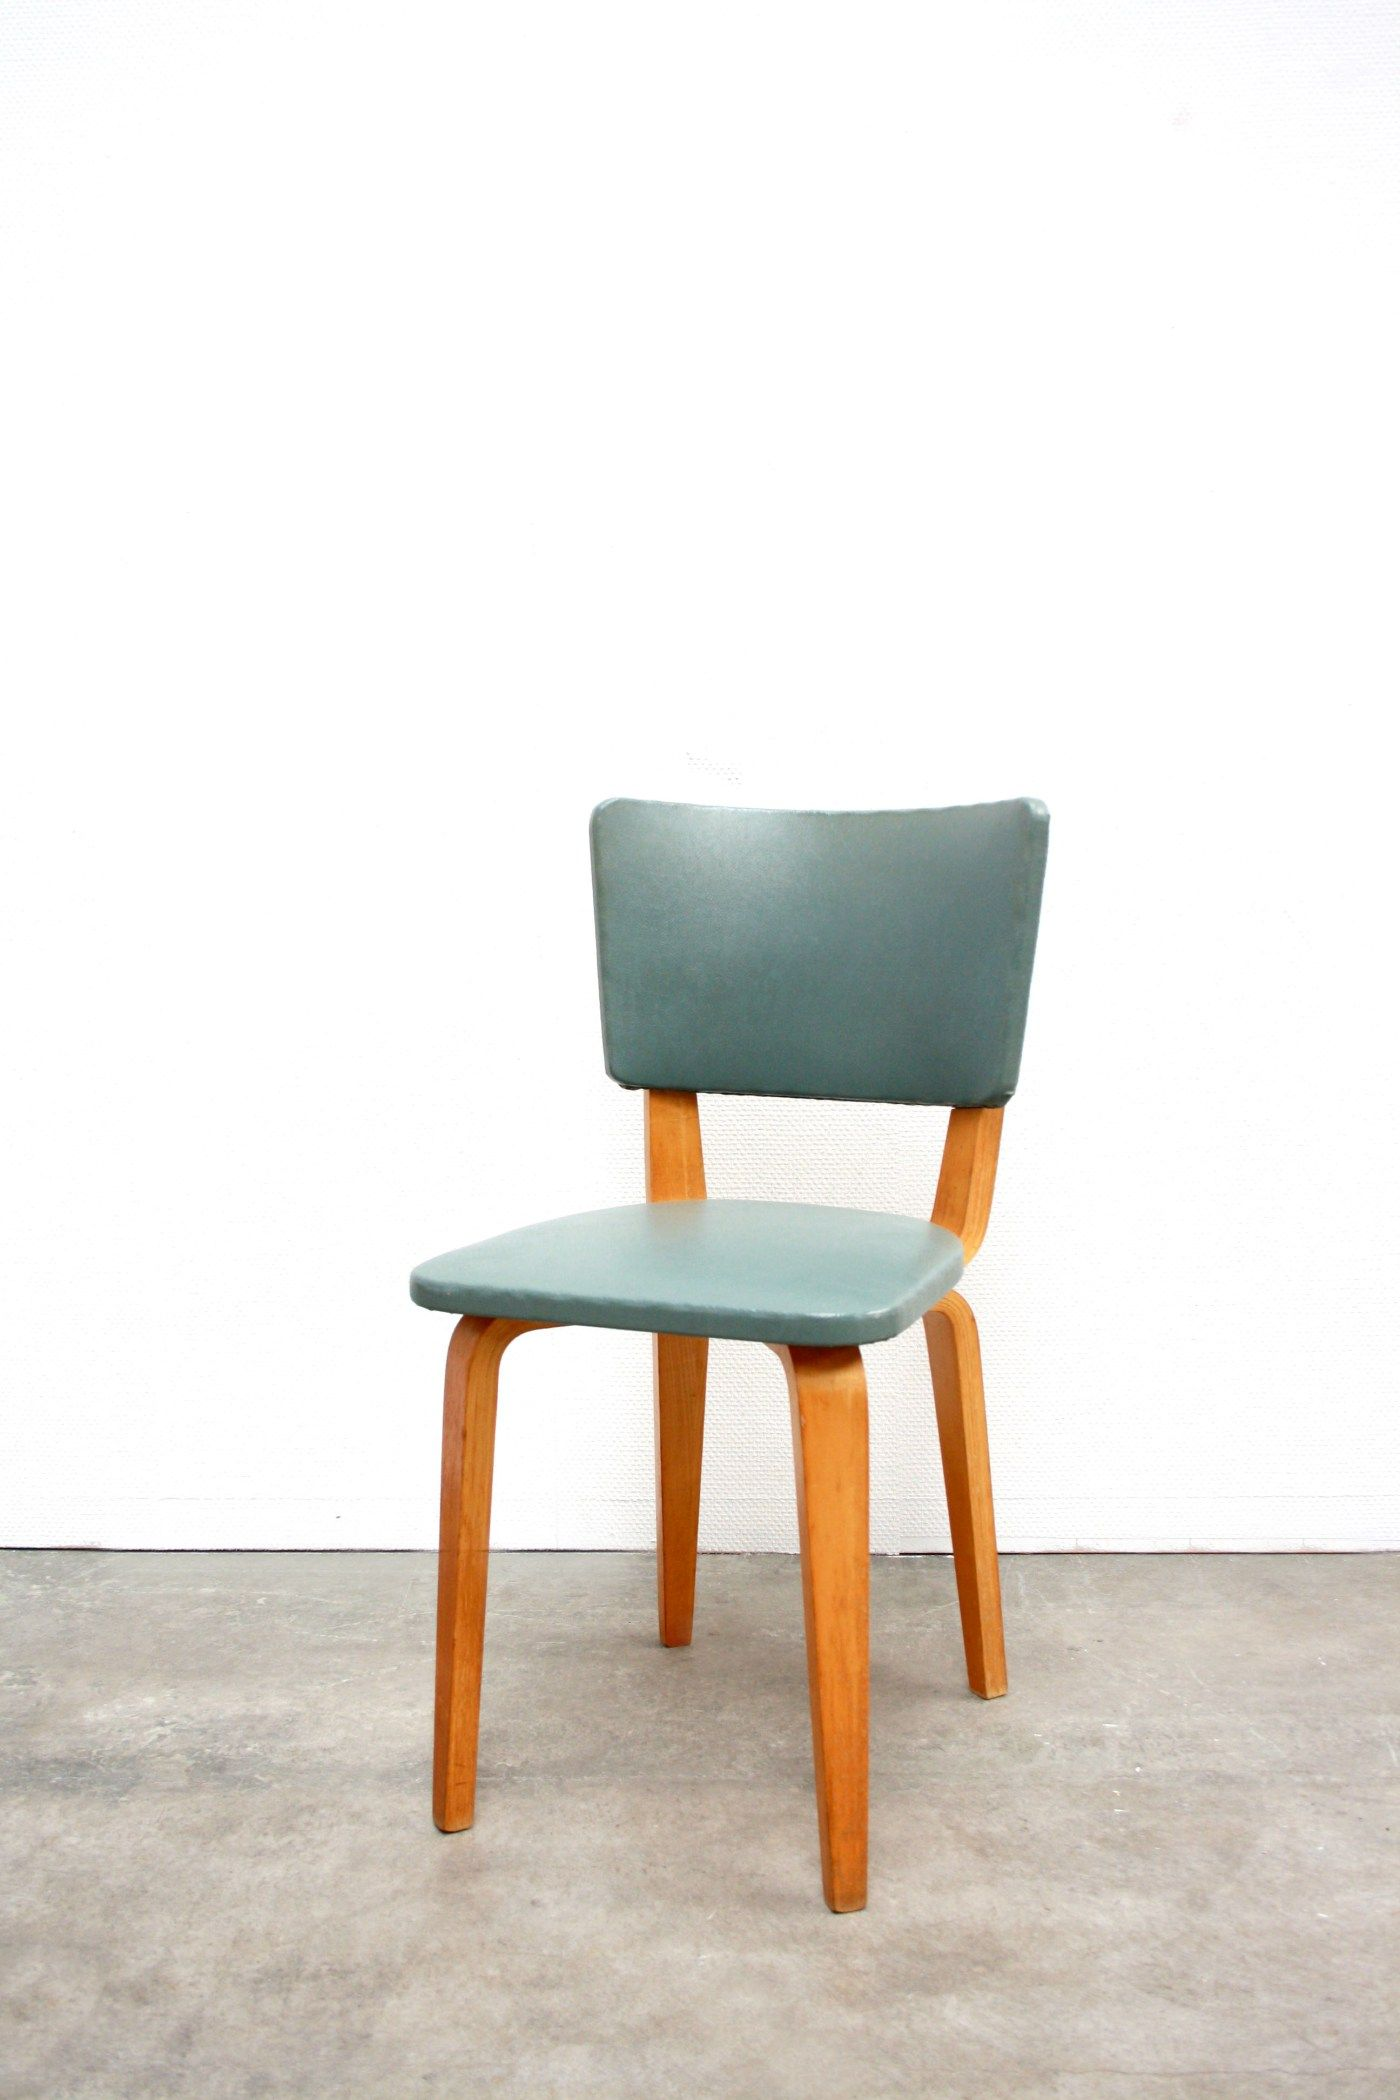 Design Stoelen Sale.Cor Alons Plywood Chair For Sale At Www Vanons Eu Stoelen